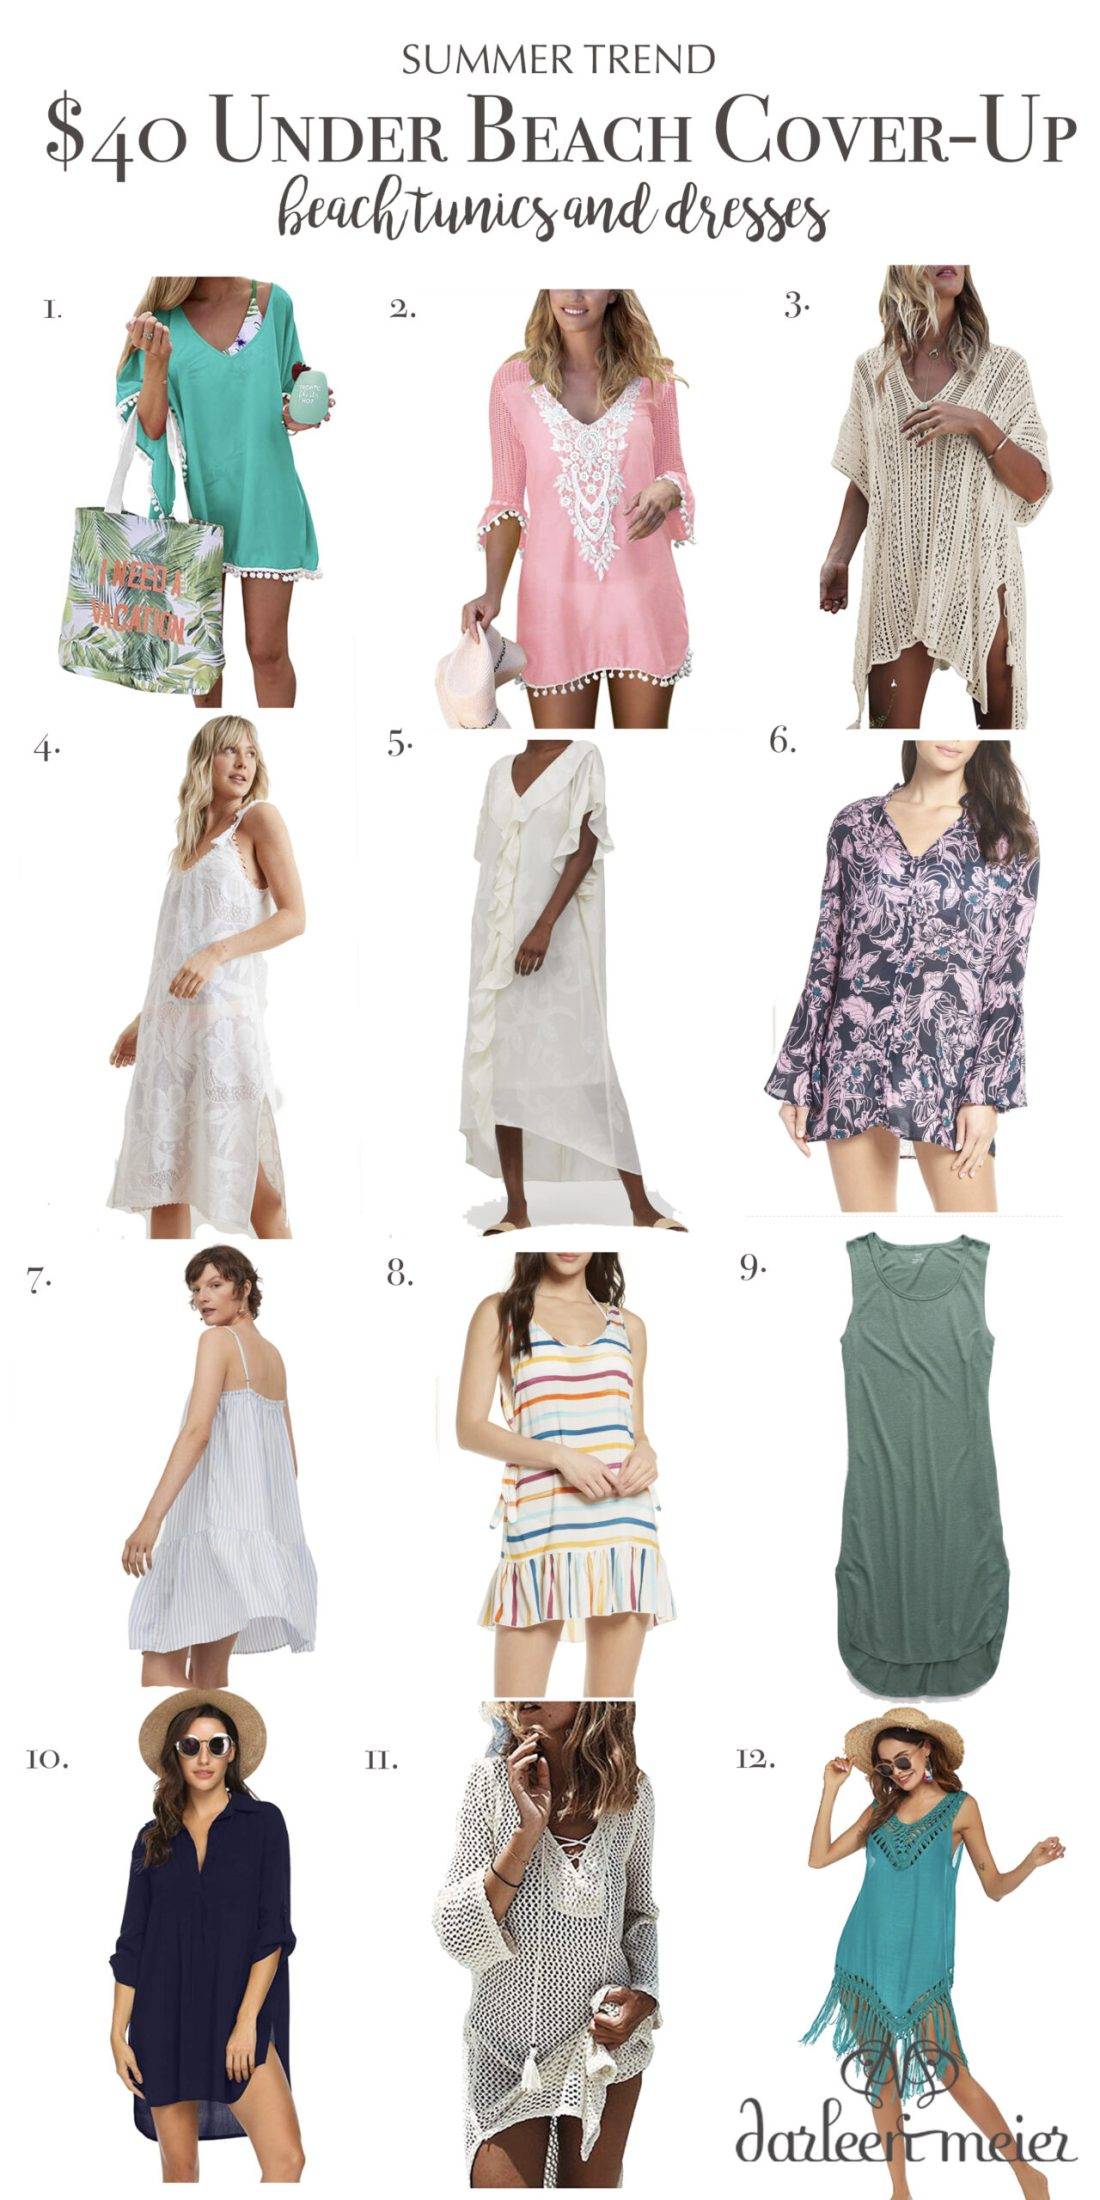 The best beach cover-ups under $40, beach tunics and dresses, summer trend, summer essential || Darling Darleen Top Lifestyle CT Blogger #beachcoverups #darlingdarleen #darleenmeier